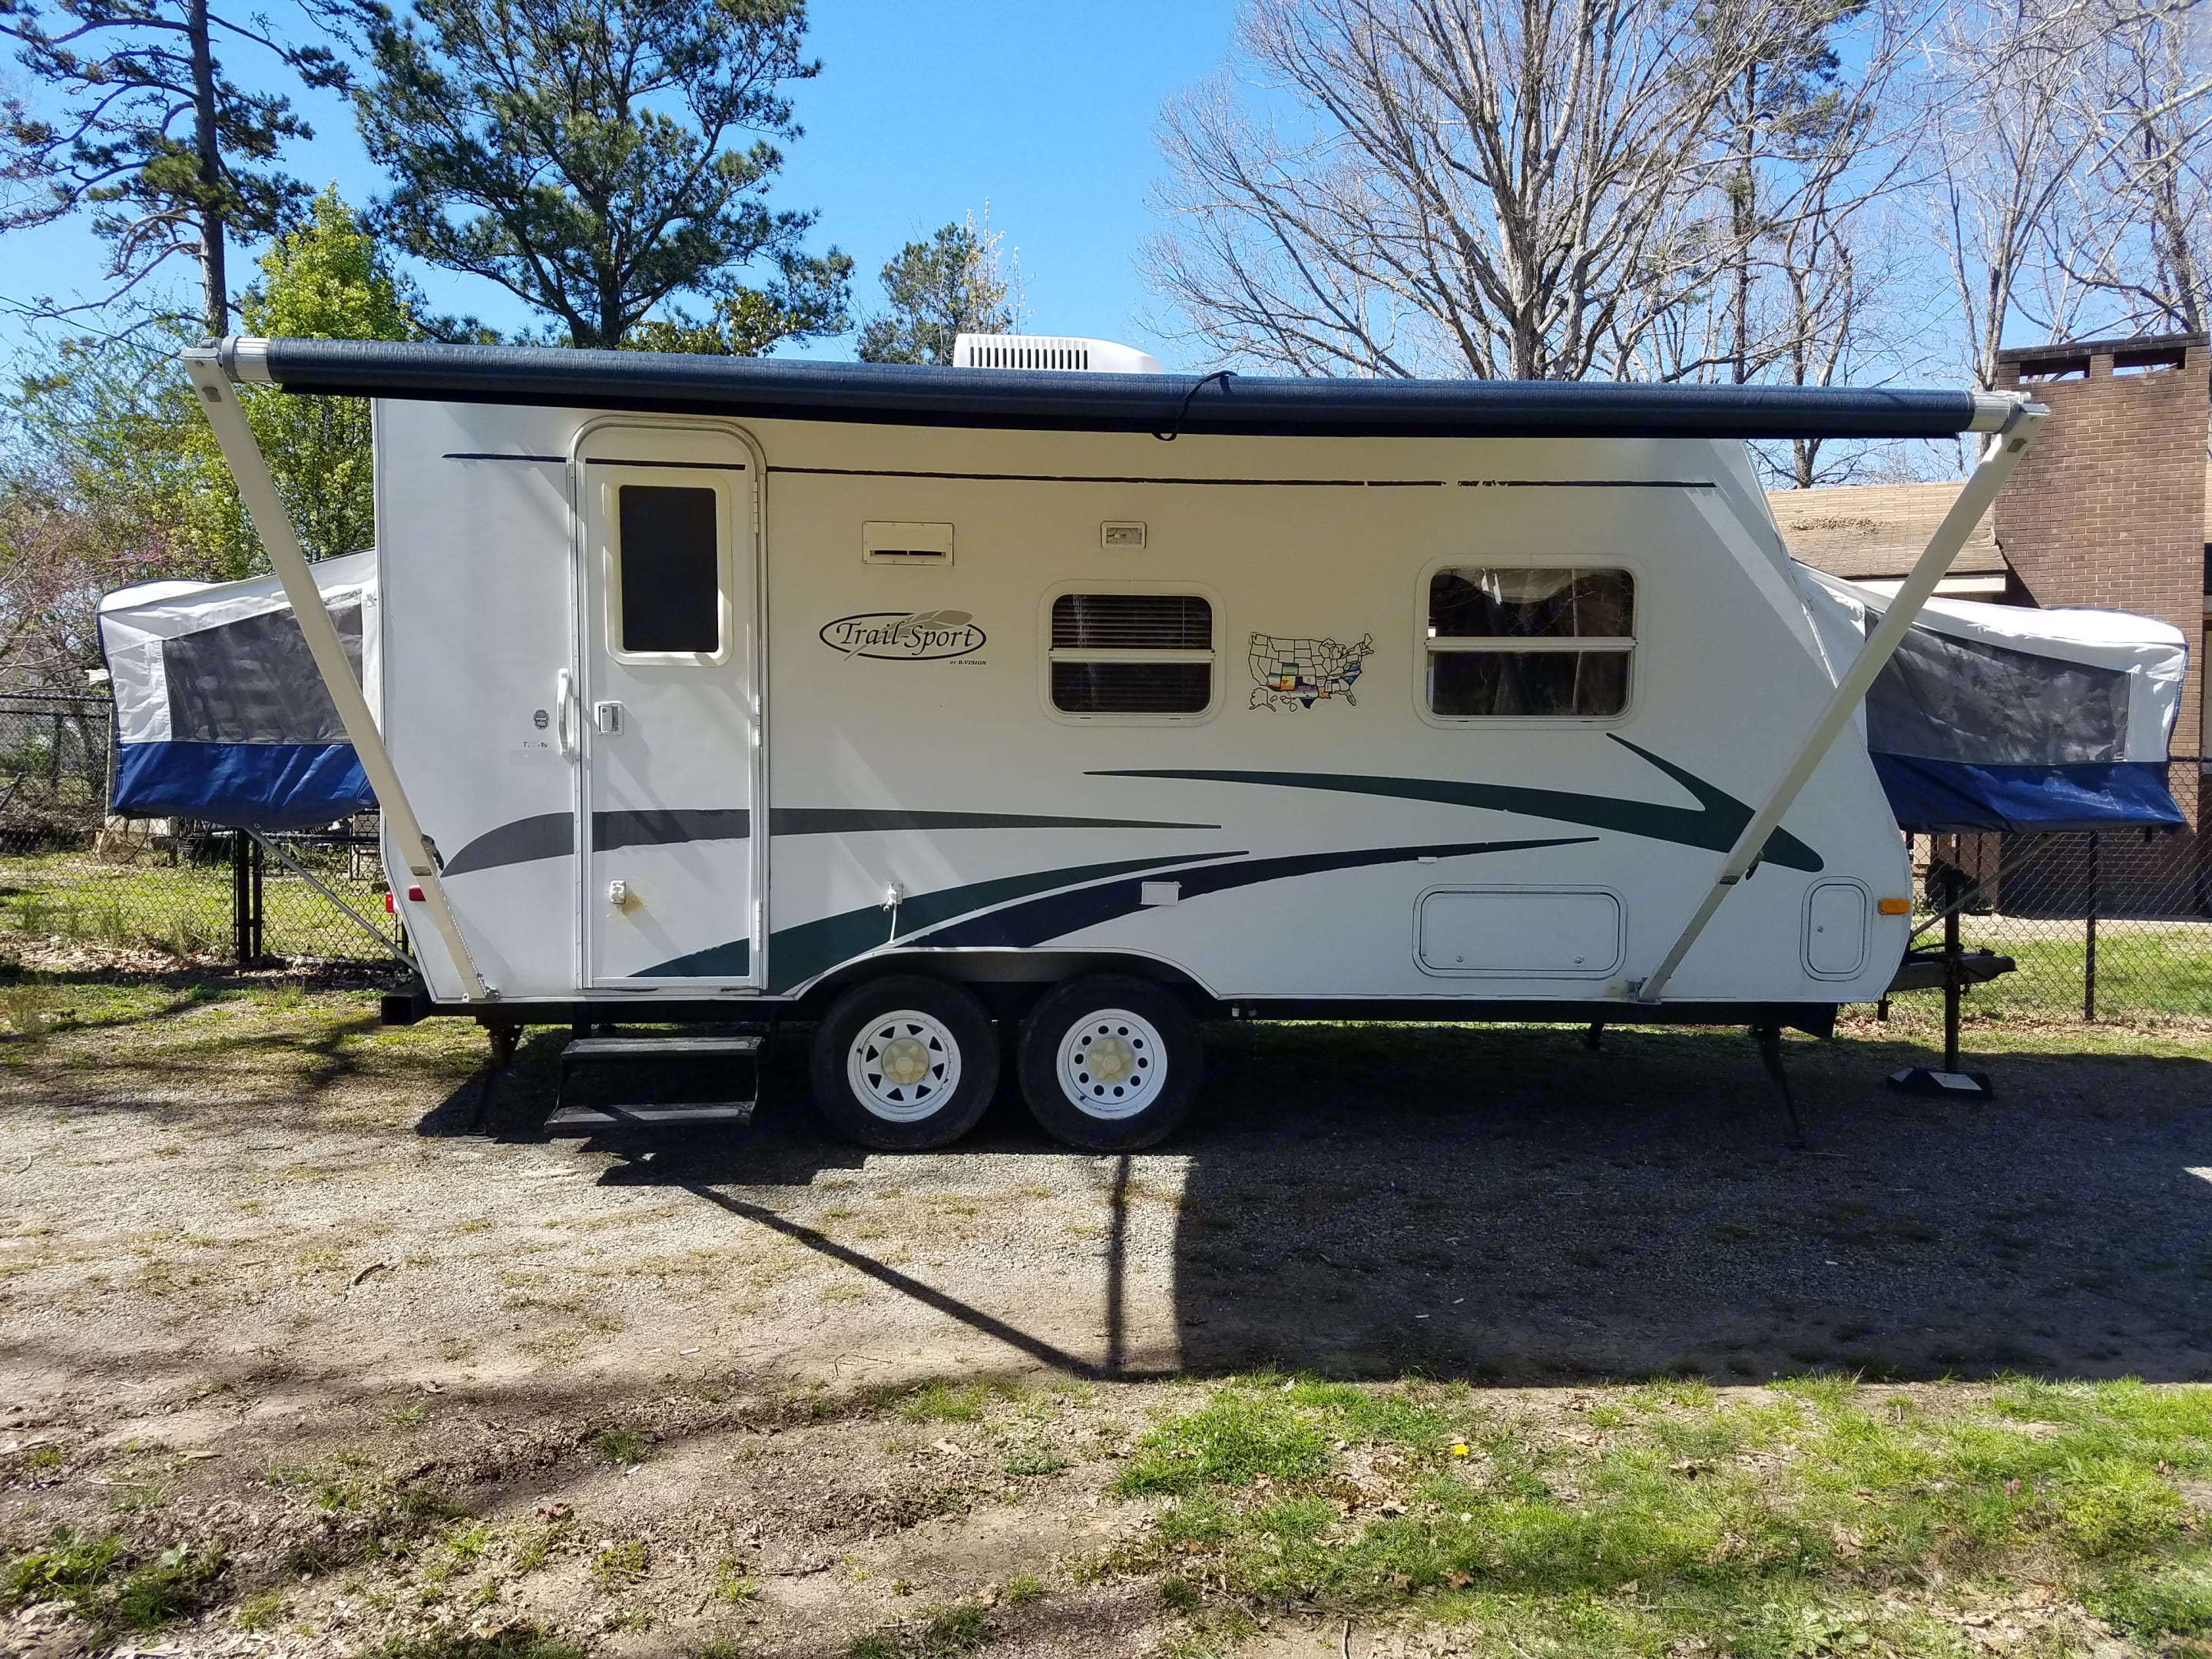 Plenty of room, awning, queen bed, double bed, fold down sofa. R-Vision Trail-Sport TSE19 2006